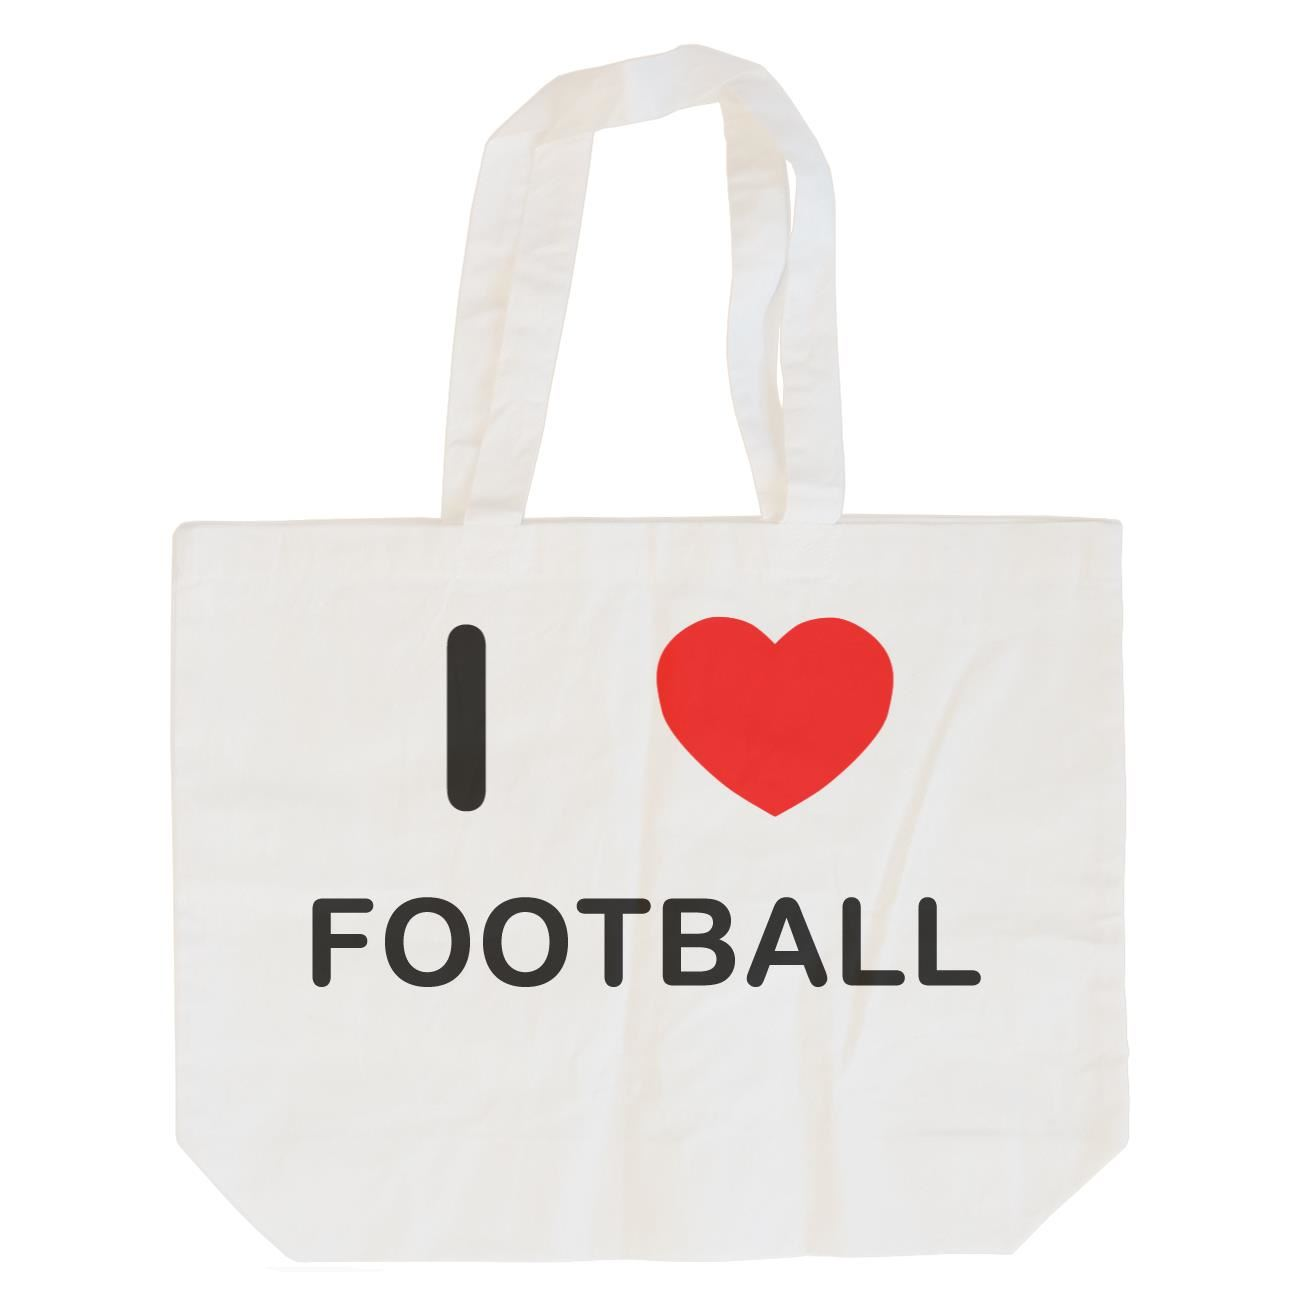 I Love Football - Cotton Bag | Size choice Tote, Shopper or Sling